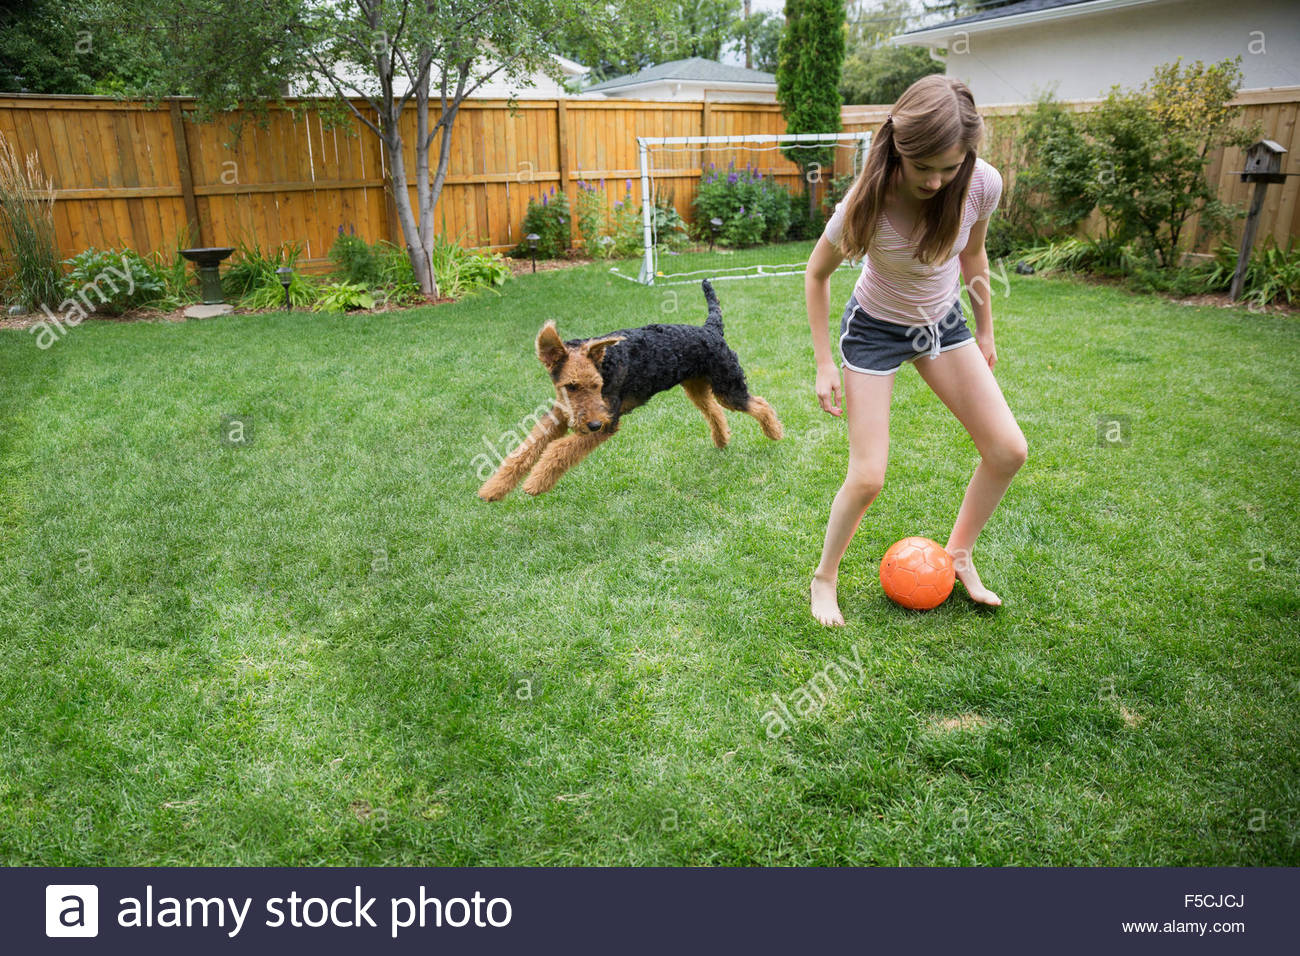 playing soccer with dog in backyard stock photo royalty free